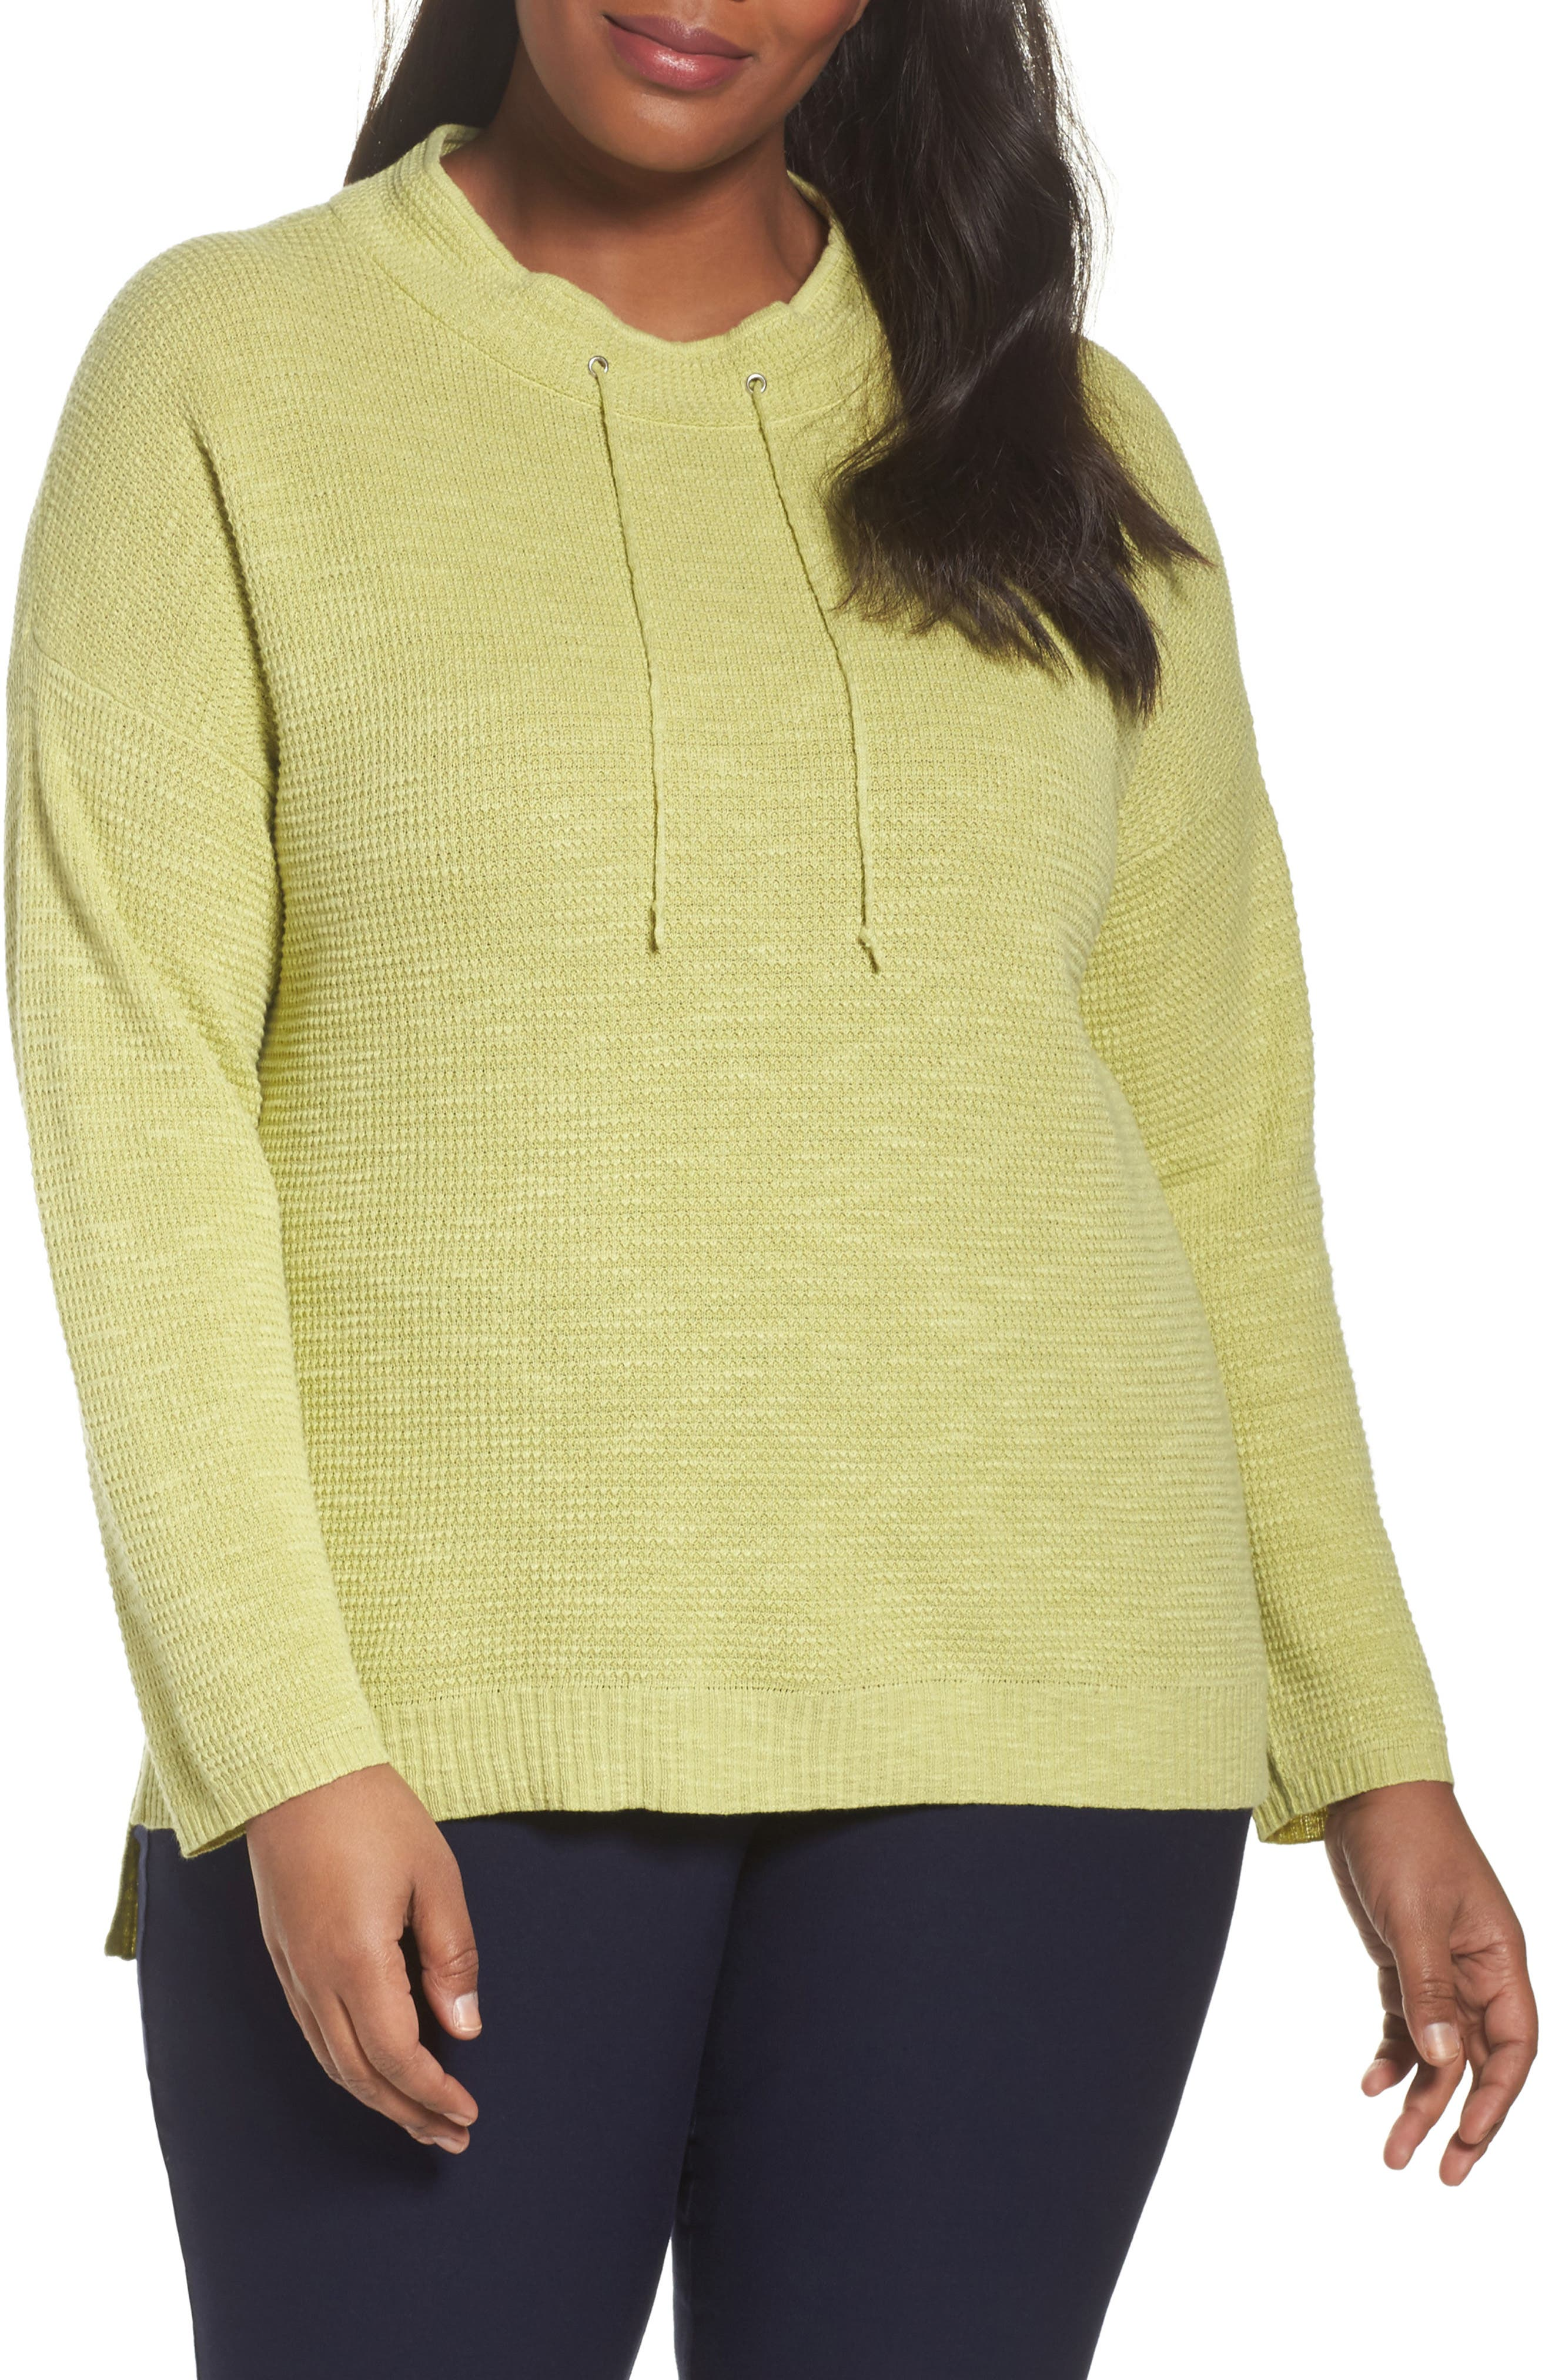 Alternate Image 1 Selected - Eileen Fisher Drawstring Neck Organic Linen & Cotton Top (Plus Size)